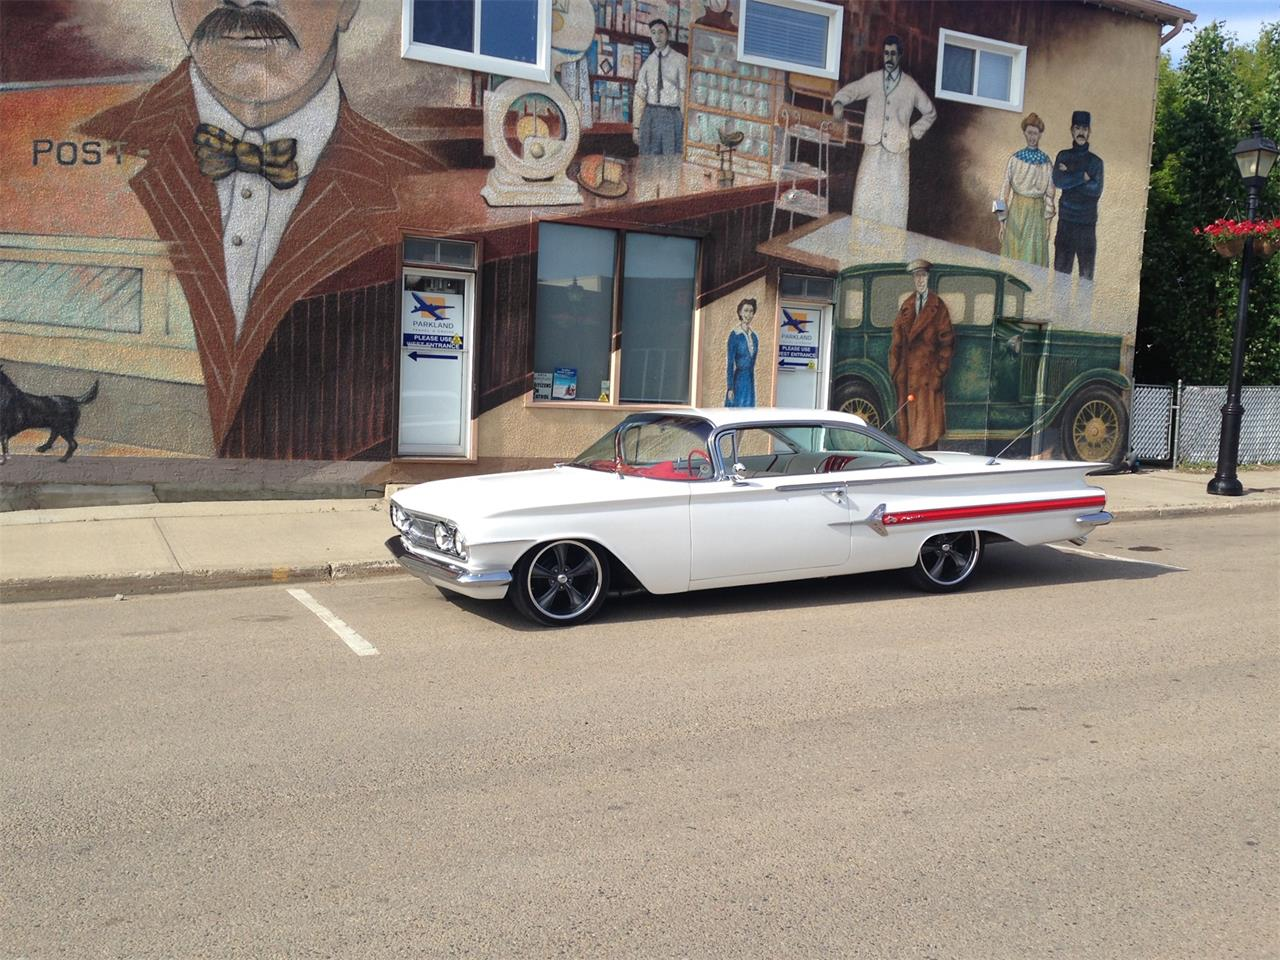 Large Picture of Classic '60 Chevrolet Impala located in Stony Plain Alberta Offered by a Private Seller - QOLH